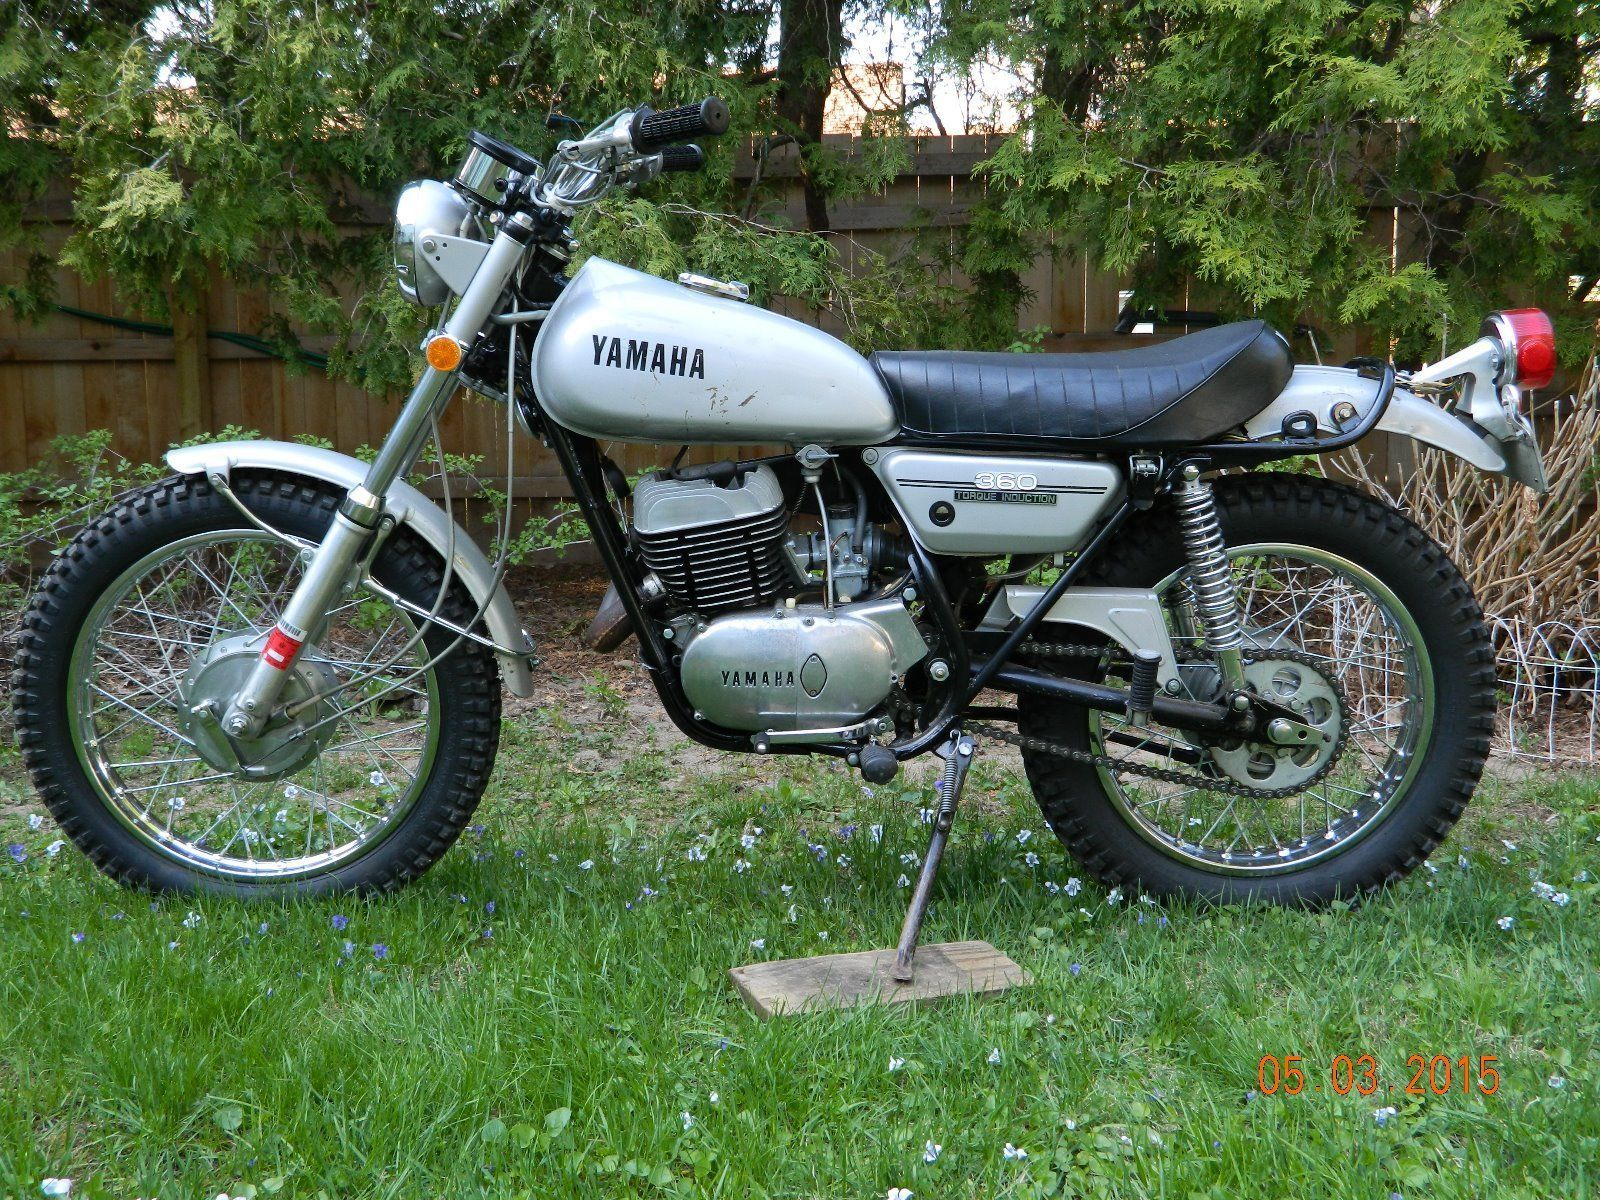 1972 yamaha rt2 360 enduro motorcycle ebay 1972 yamaha. Black Bedroom Furniture Sets. Home Design Ideas